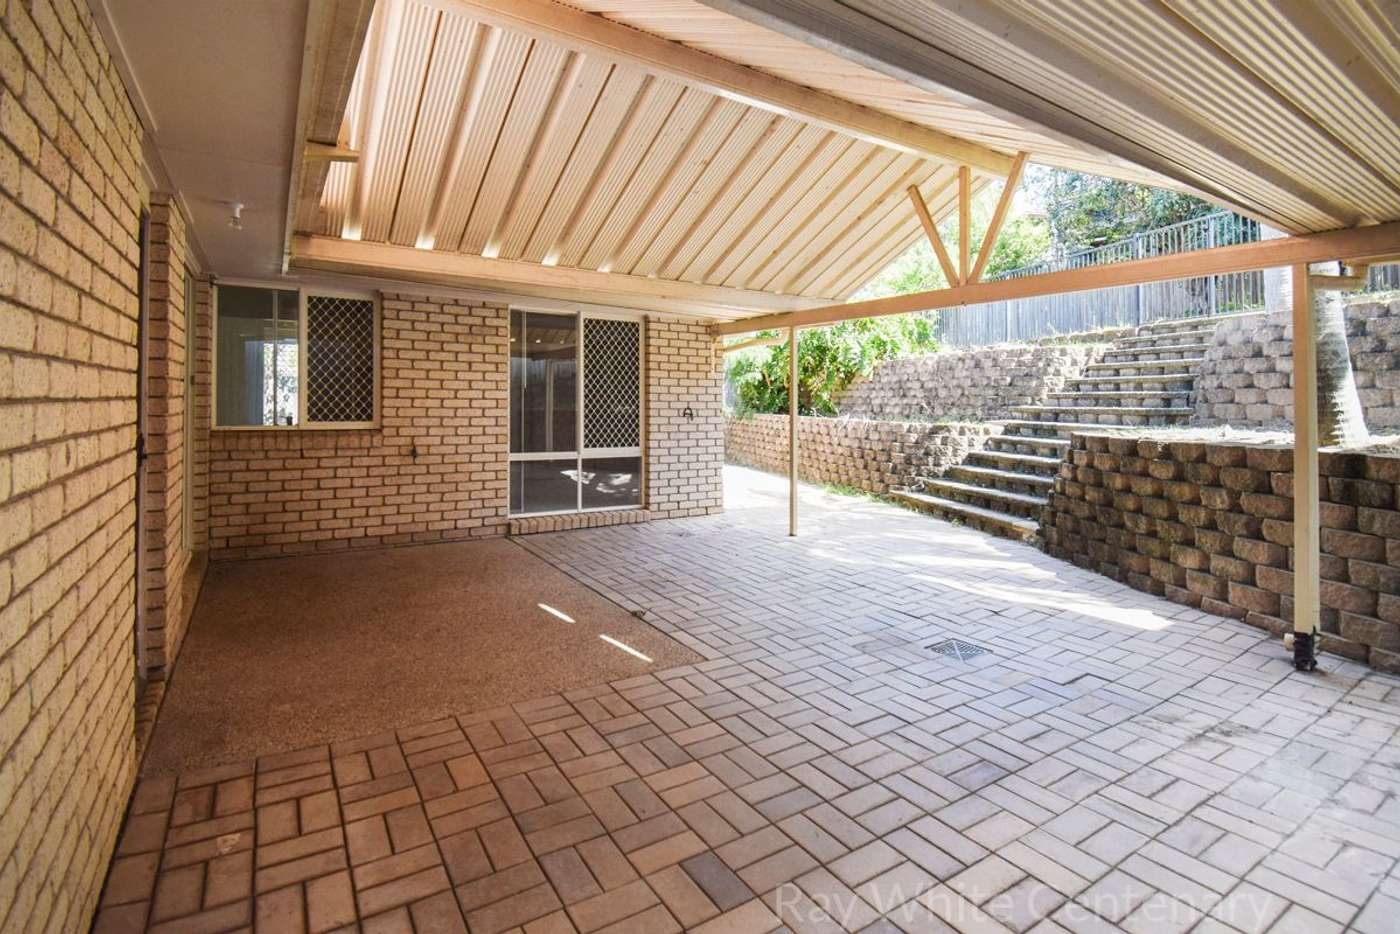 Main view of Homely house listing, 6 Spurs Place, Sumner QLD 4074